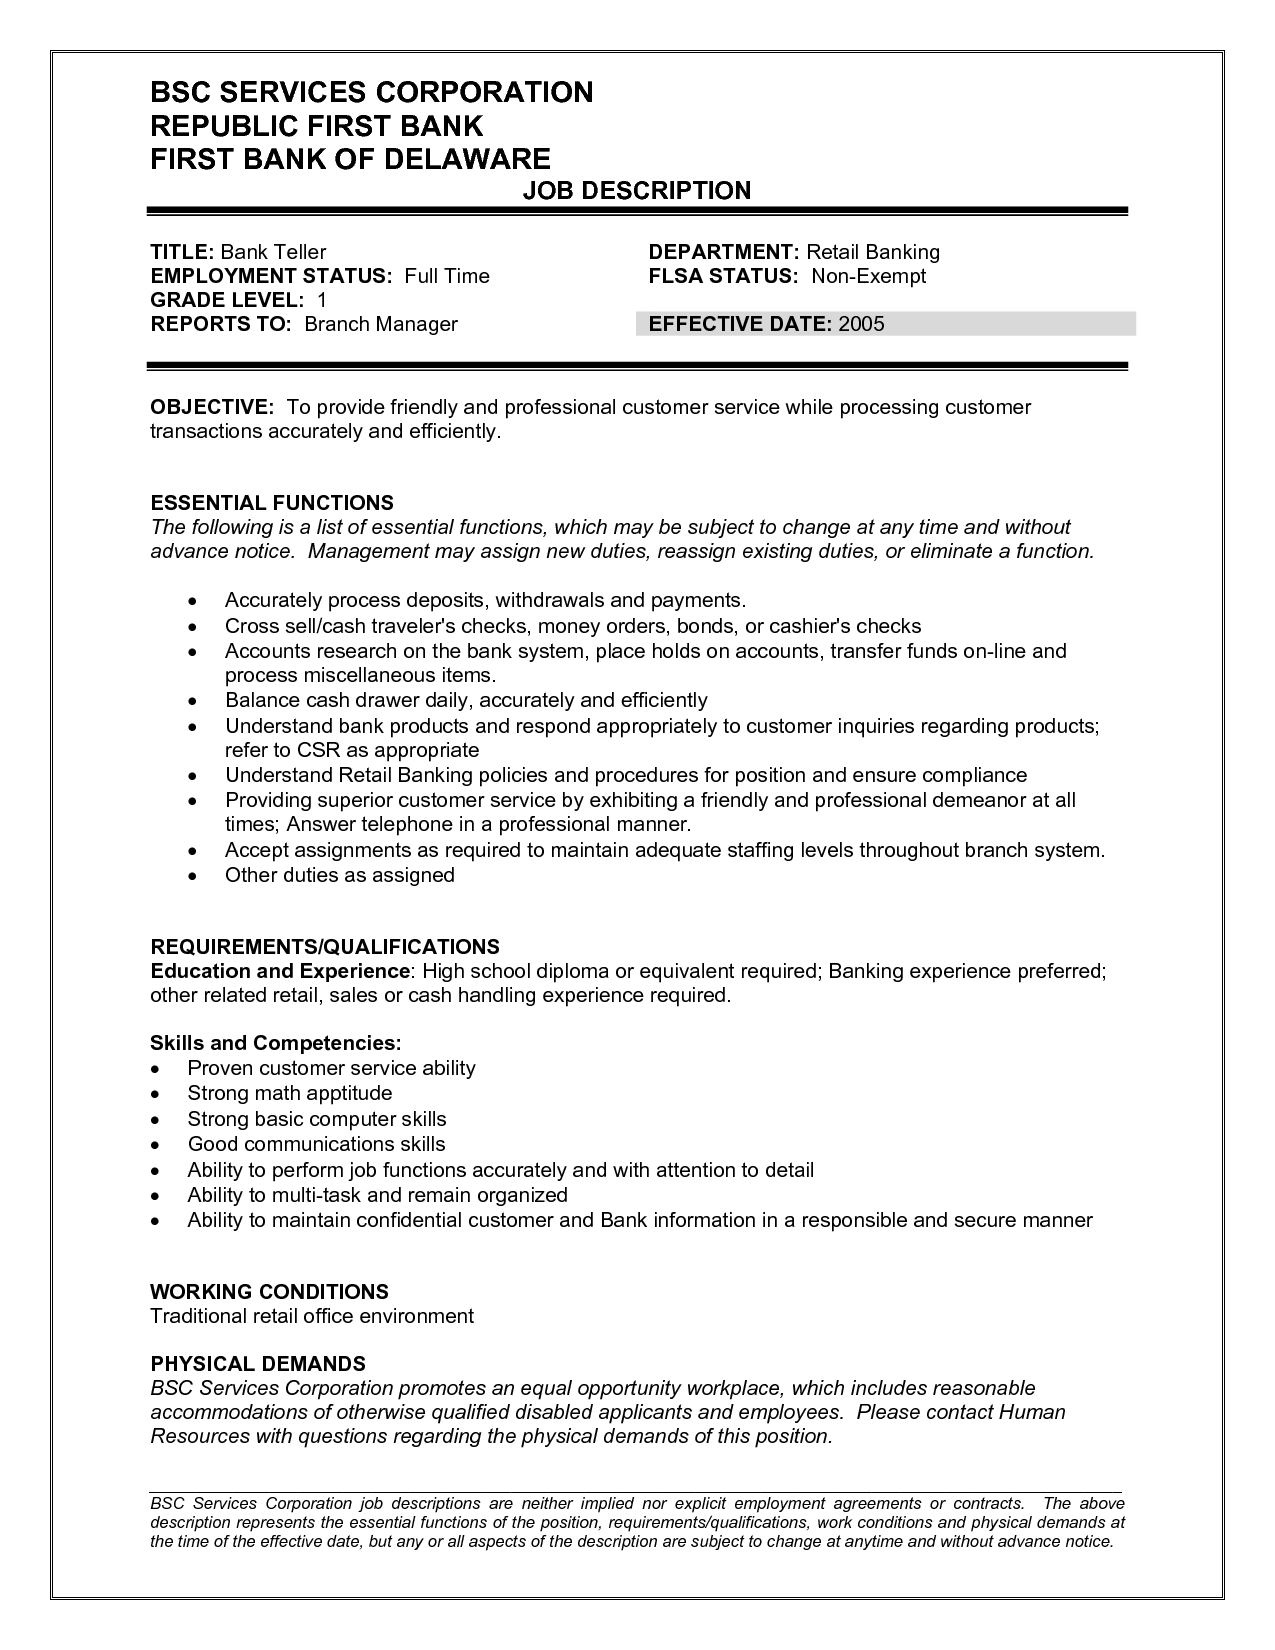 best bank teller resume samples job description resume - Resume Templates For Bank Teller